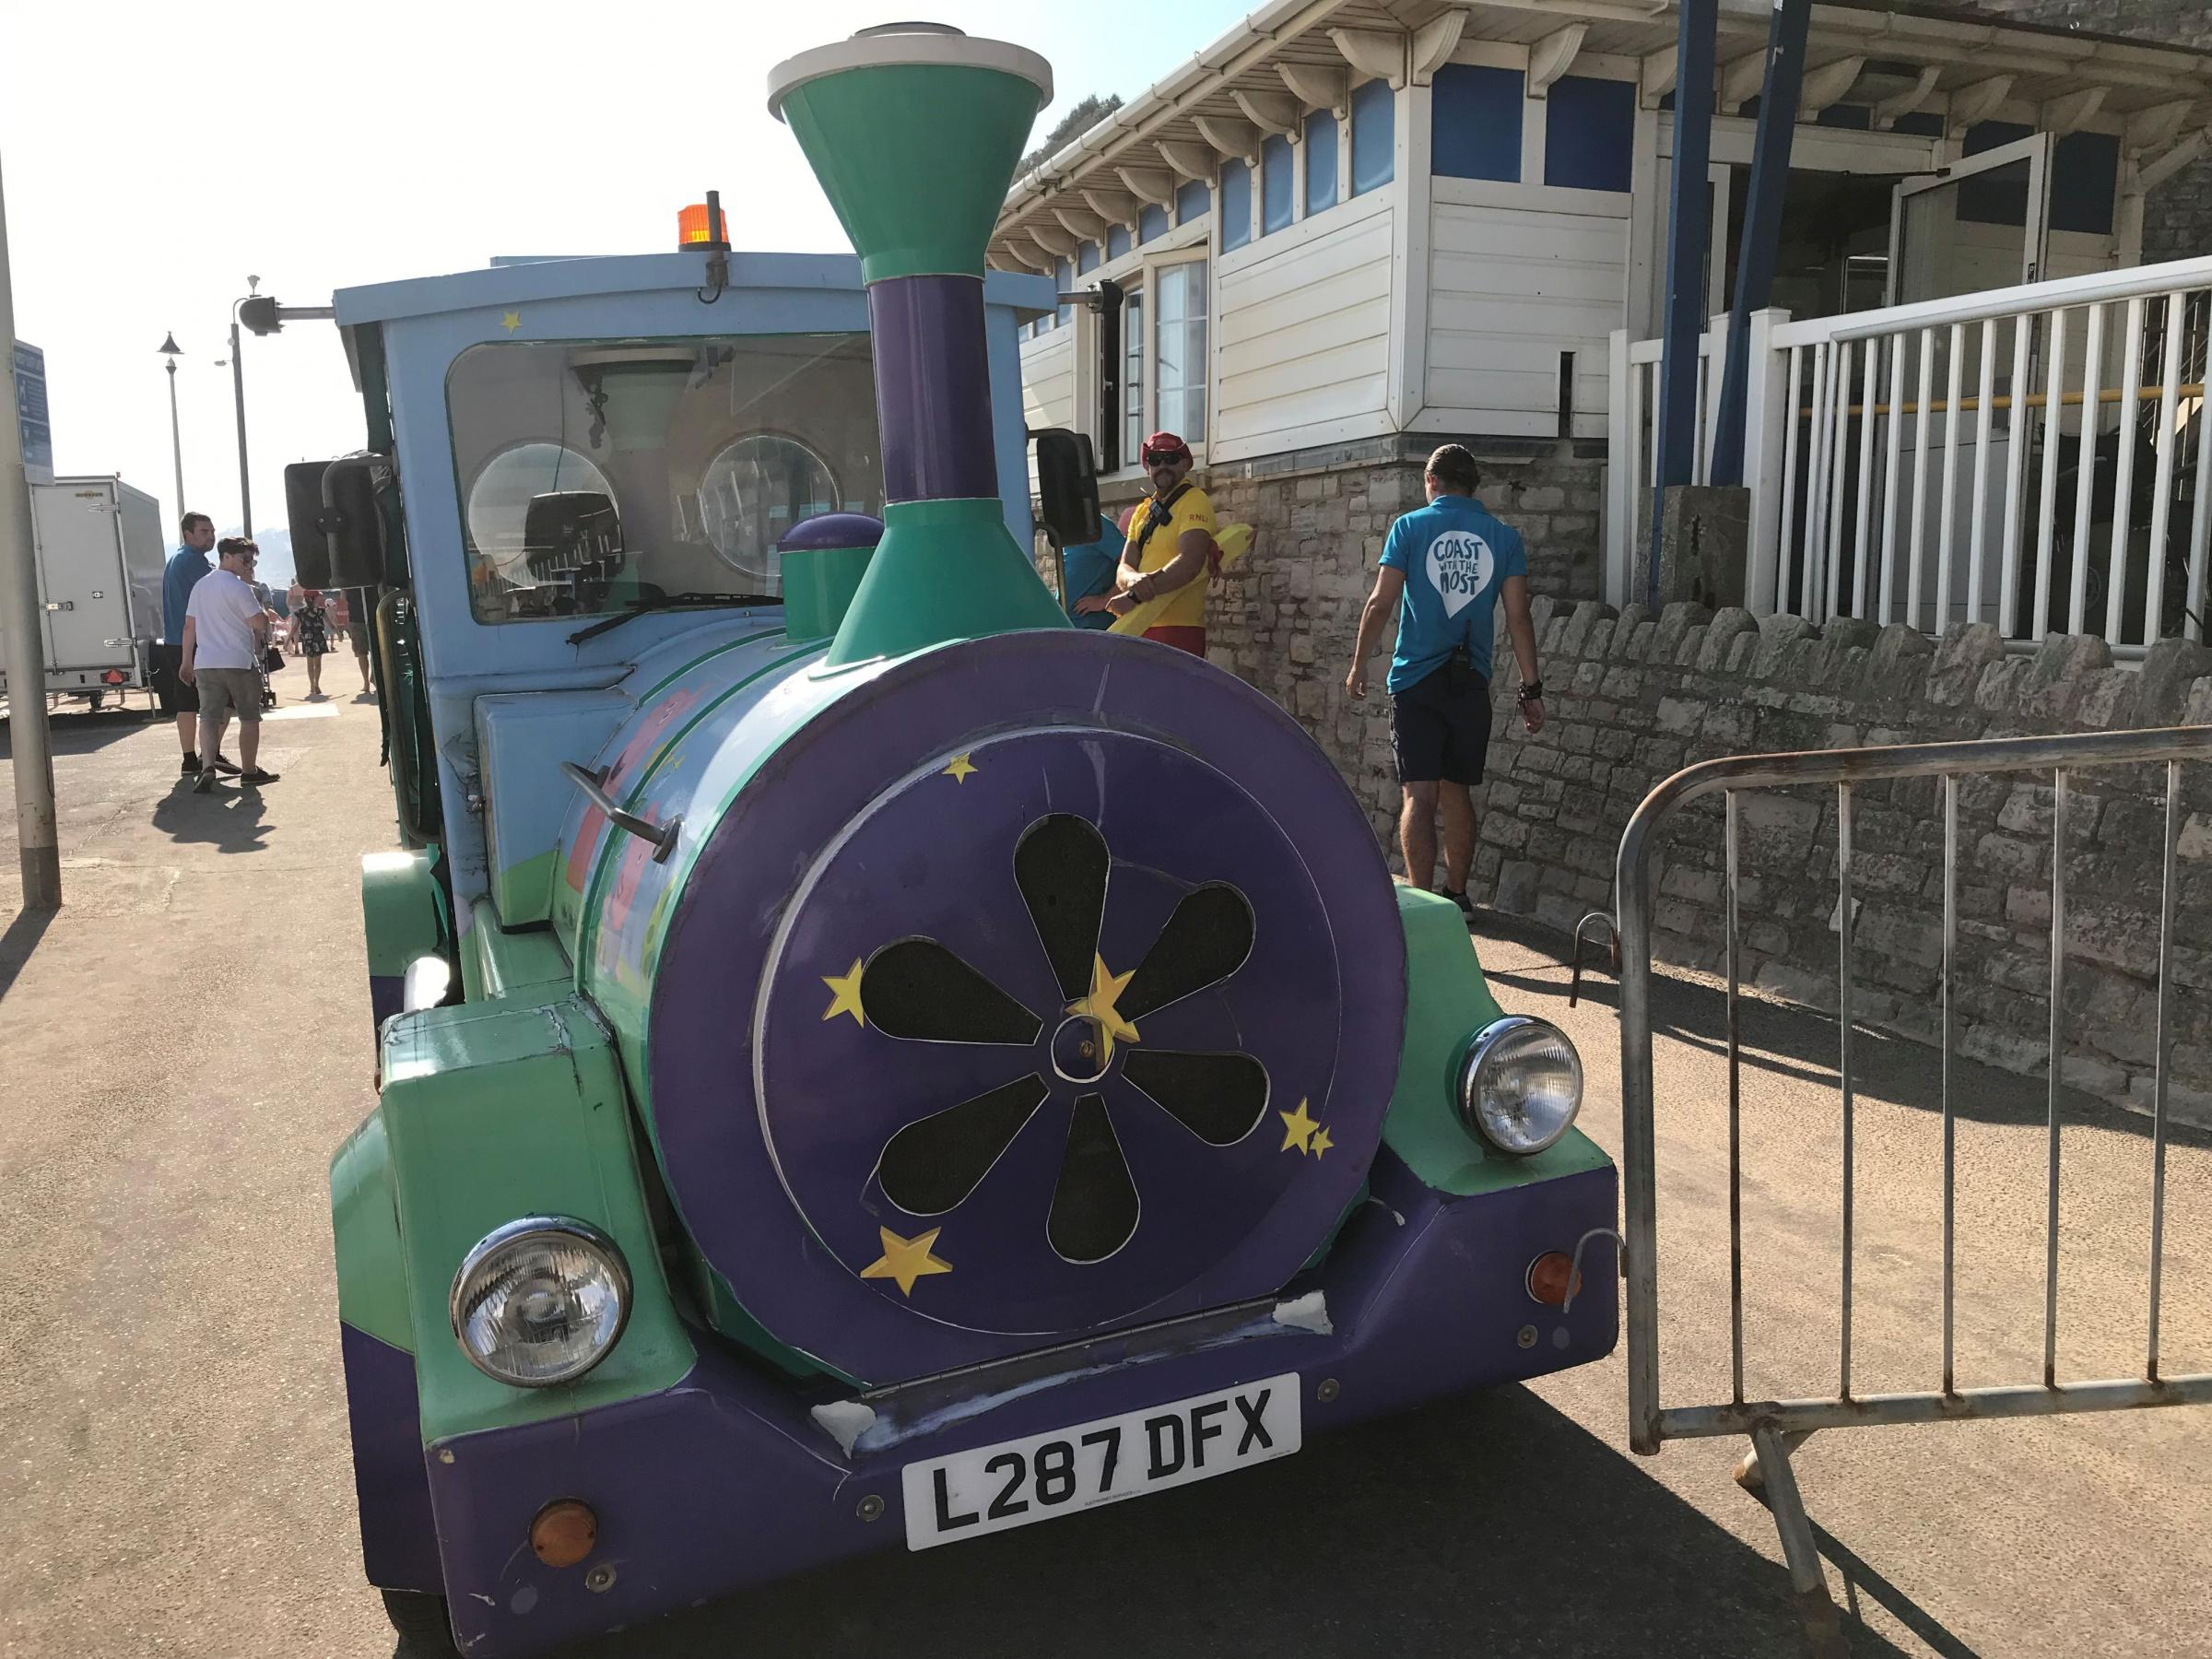 'Witnesses hear scream' after incident involving the land train near Bournemouth Pier